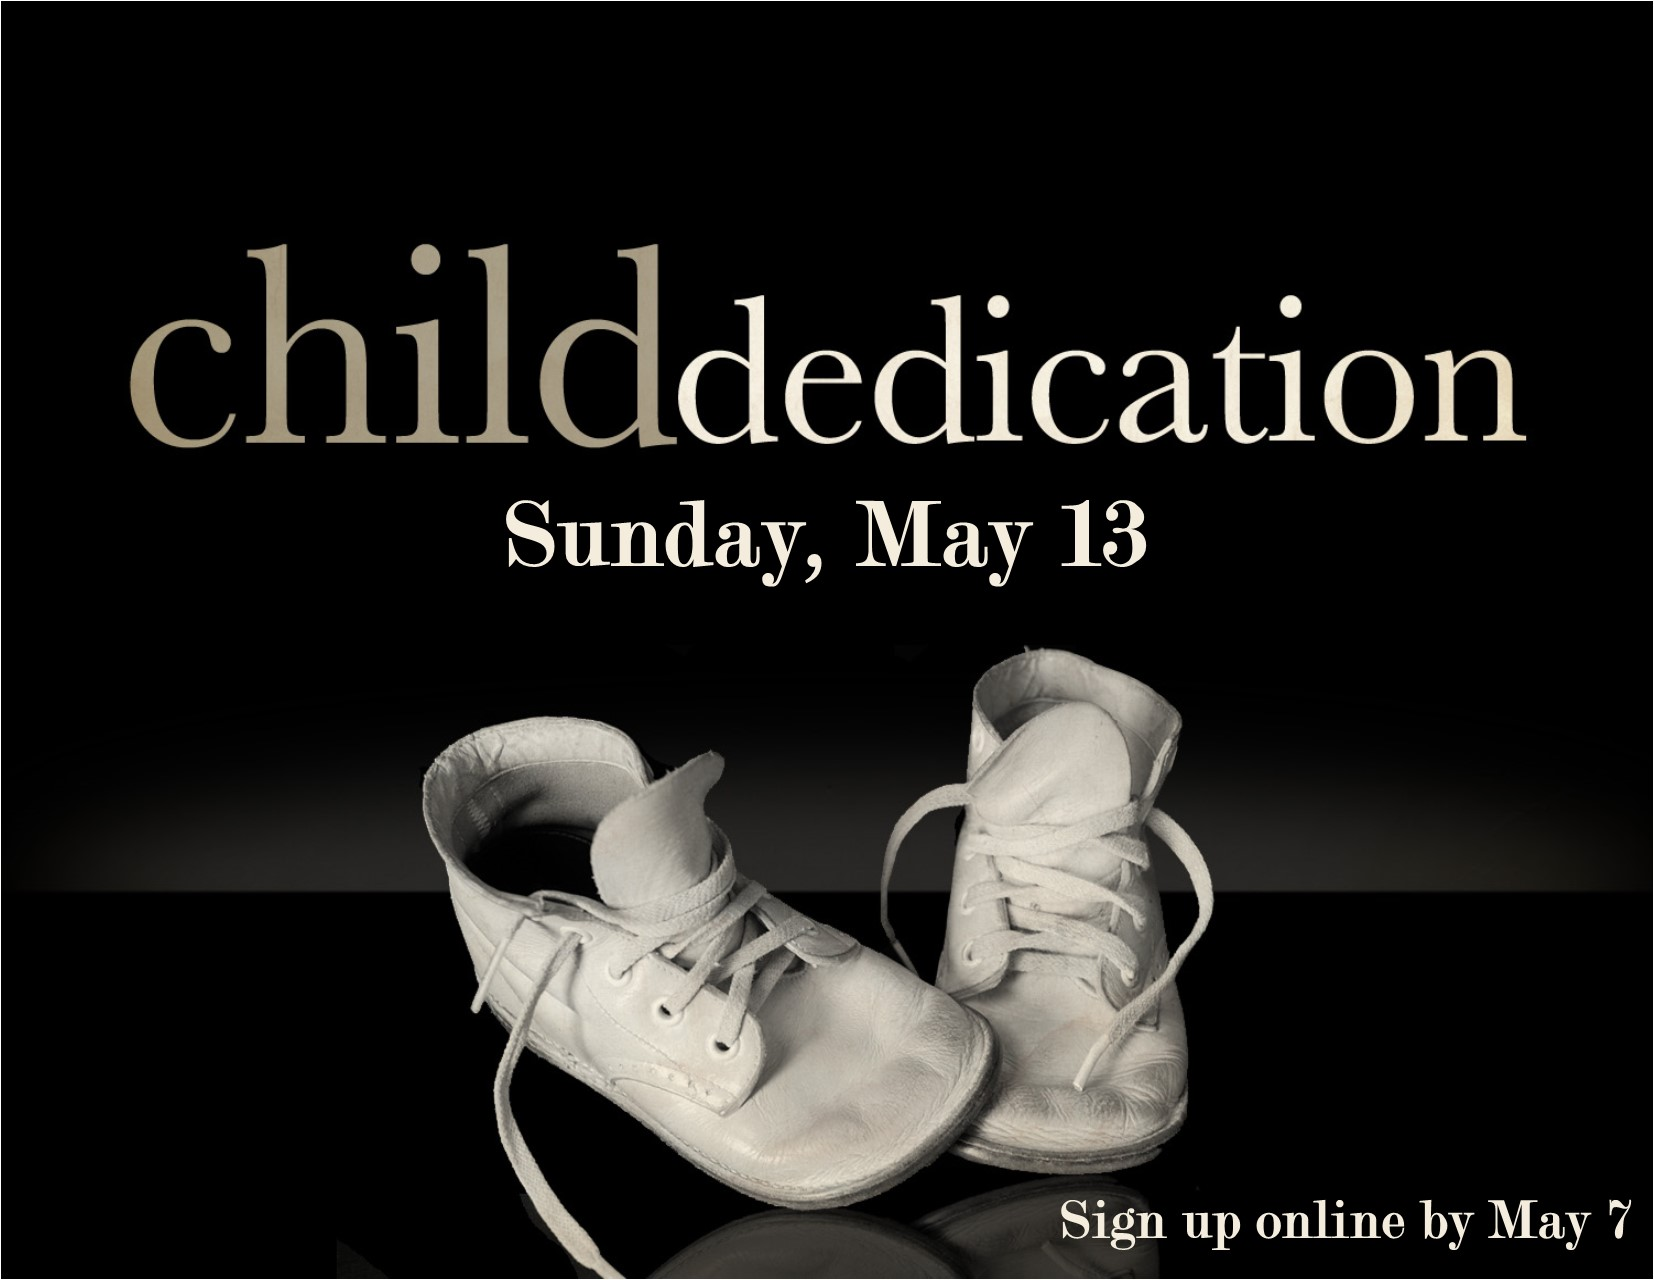 Child Dedication with Date.jpg